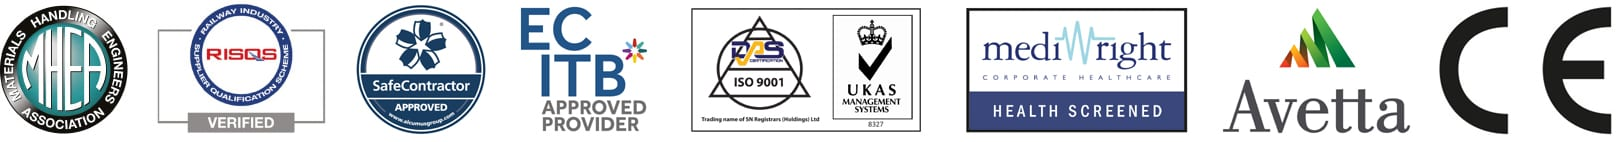 Wright Engineering Accreditations